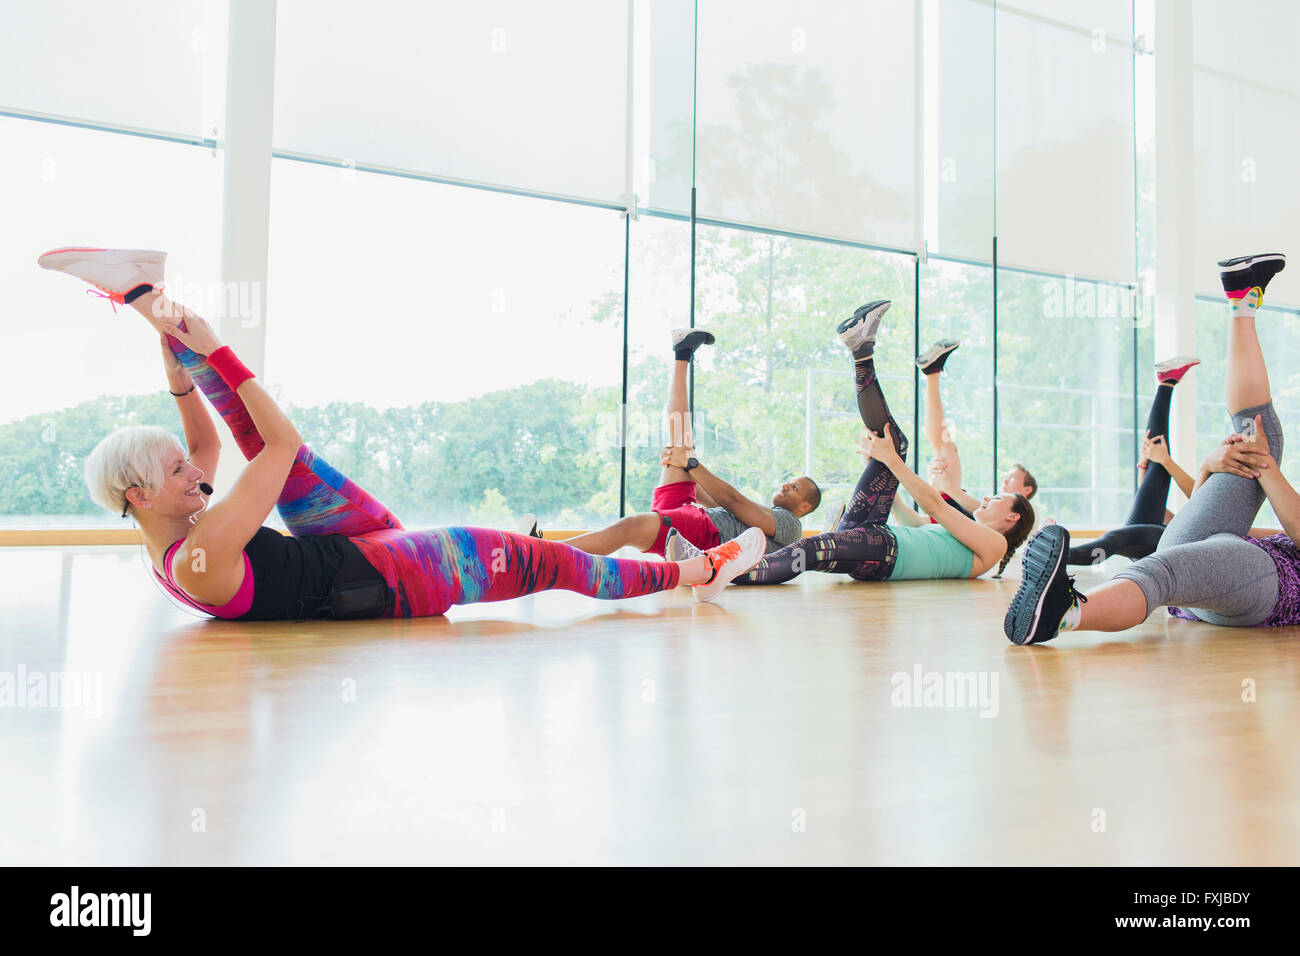 Fitness instructor guiding exercise class stretching legs - Stock Image